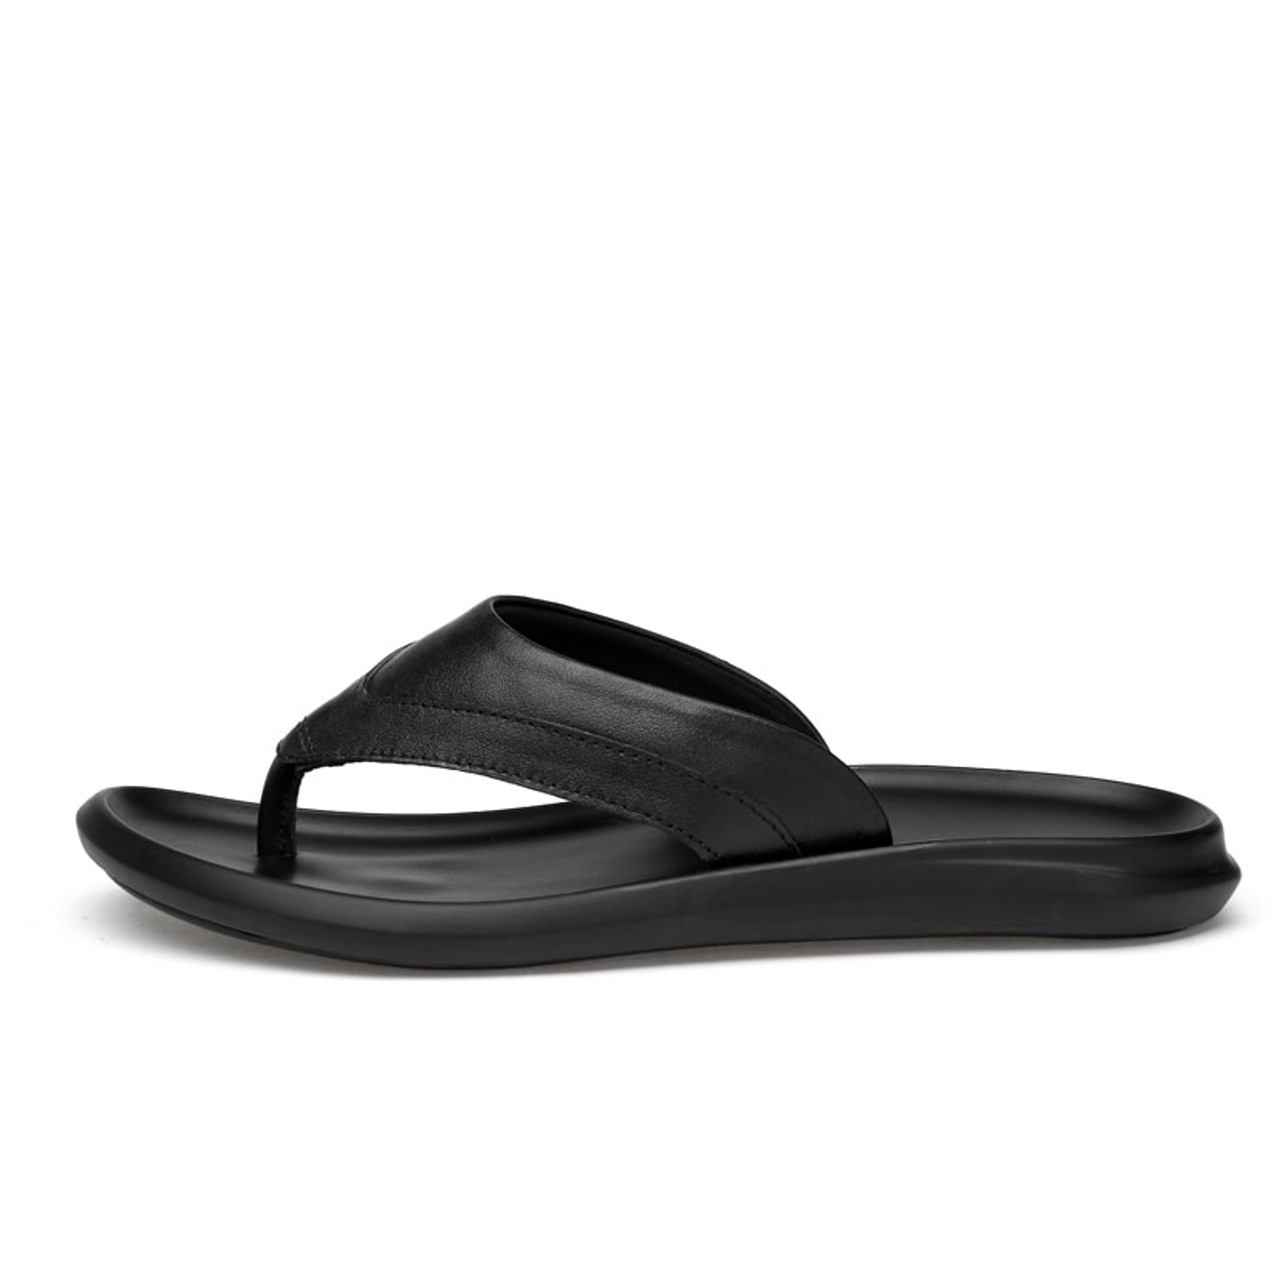 f47d79cac ... Brand 2018 New Men s Flip Flops Genuine Leather Slippers Summer Fashion  Beach Sandals Shoes Men Shoes ...